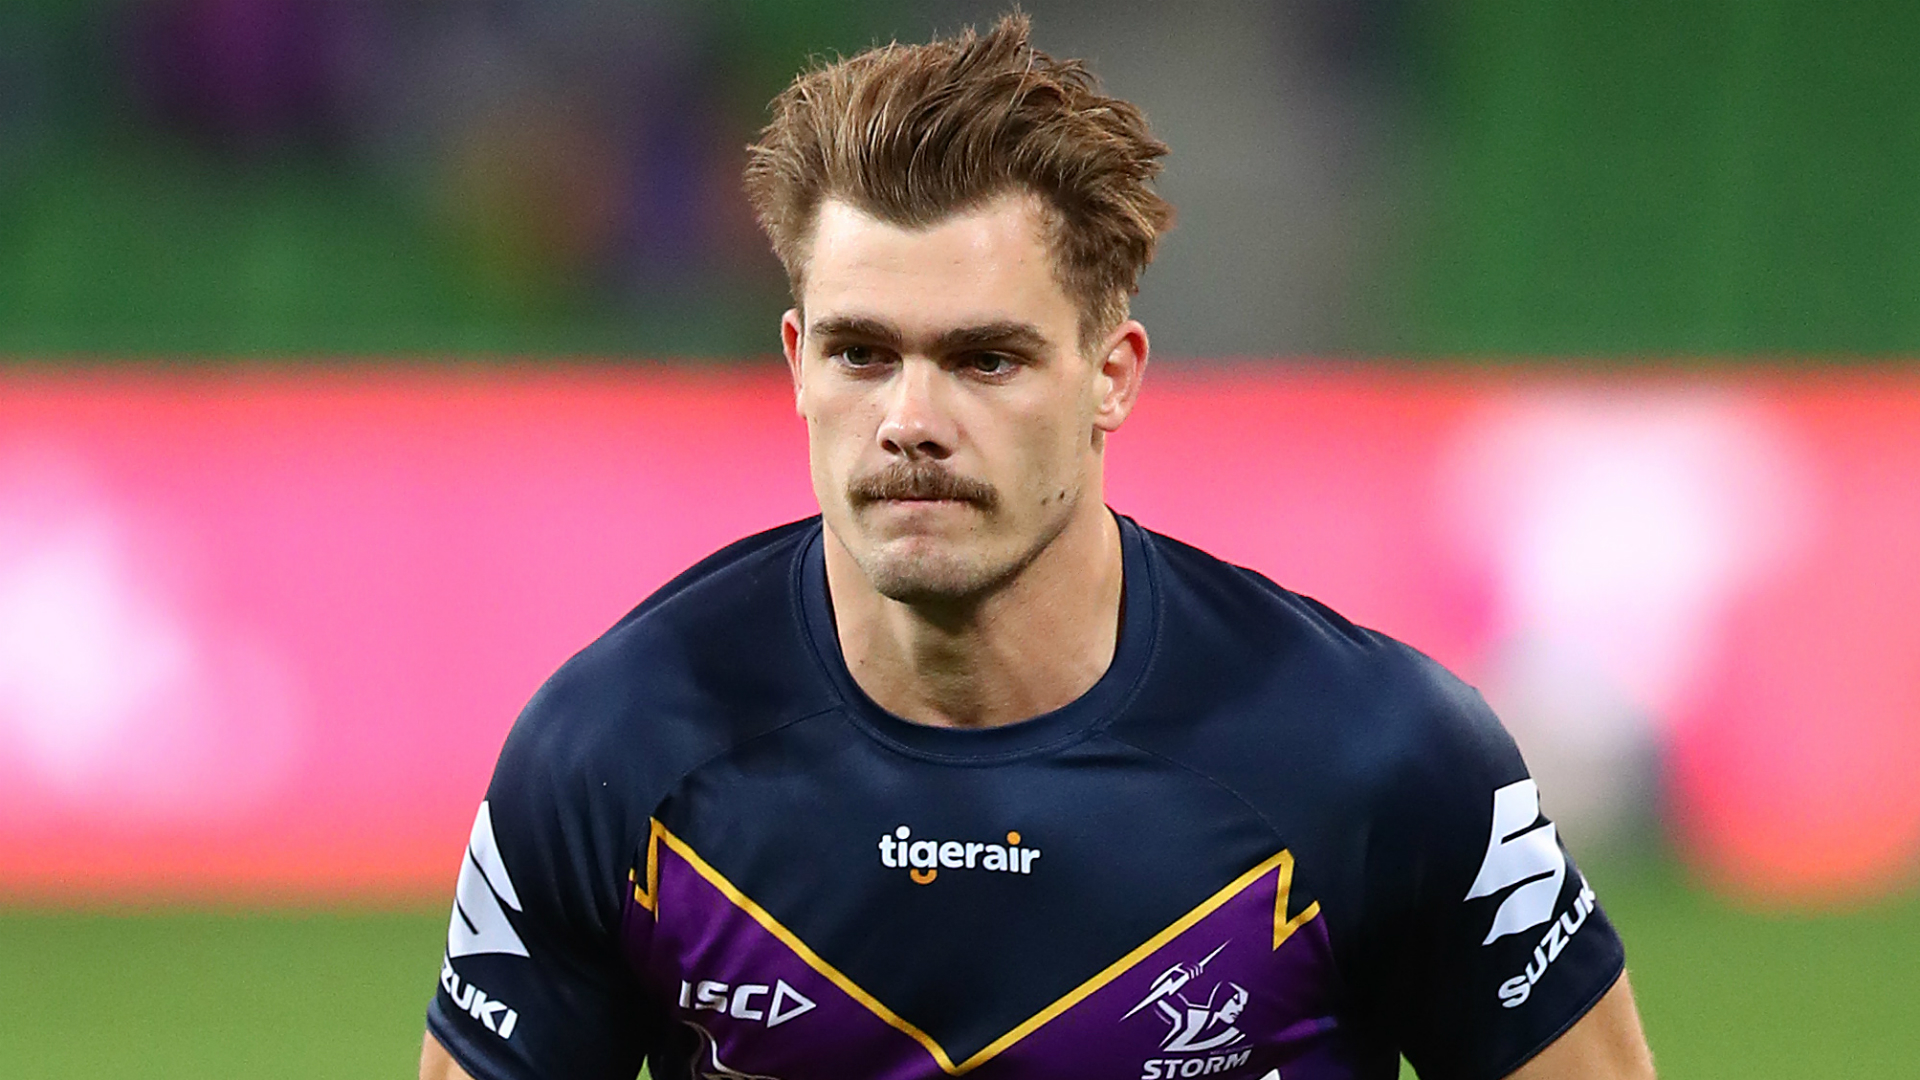 Captain Cameron Smith's shoulder injury dealt a blow to Melbourne Storm, but Ryan Papenhuyzen turned on the style against Newcastle Knights.